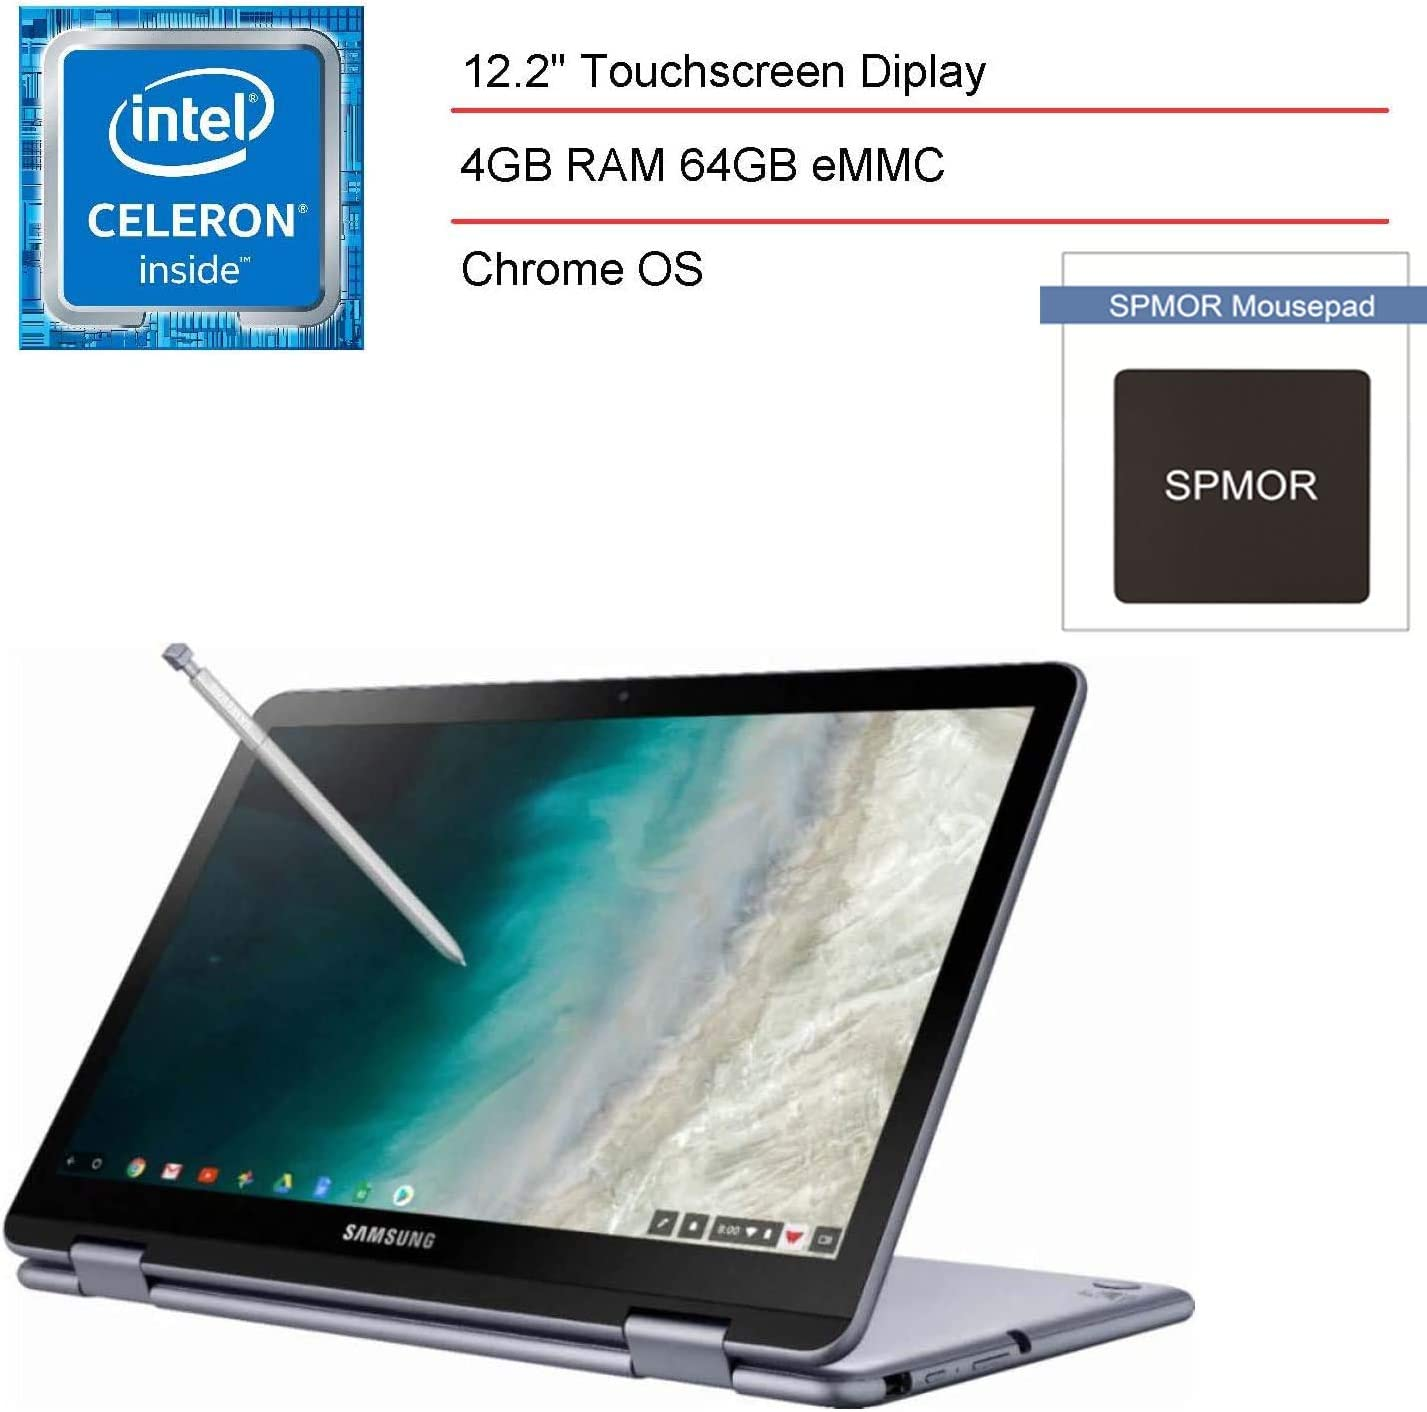 """2020 Samsung Chromebook 12.2"""" FHD Touchscreen 2-in-1 Laptop, Tablet for Business or Student, Intel Celeron 3965Y, 4GB RAM, 64GB eMMC, 802.11AC WiFi, Chrome OS, Digital Pen and SPMOR Accessories"""